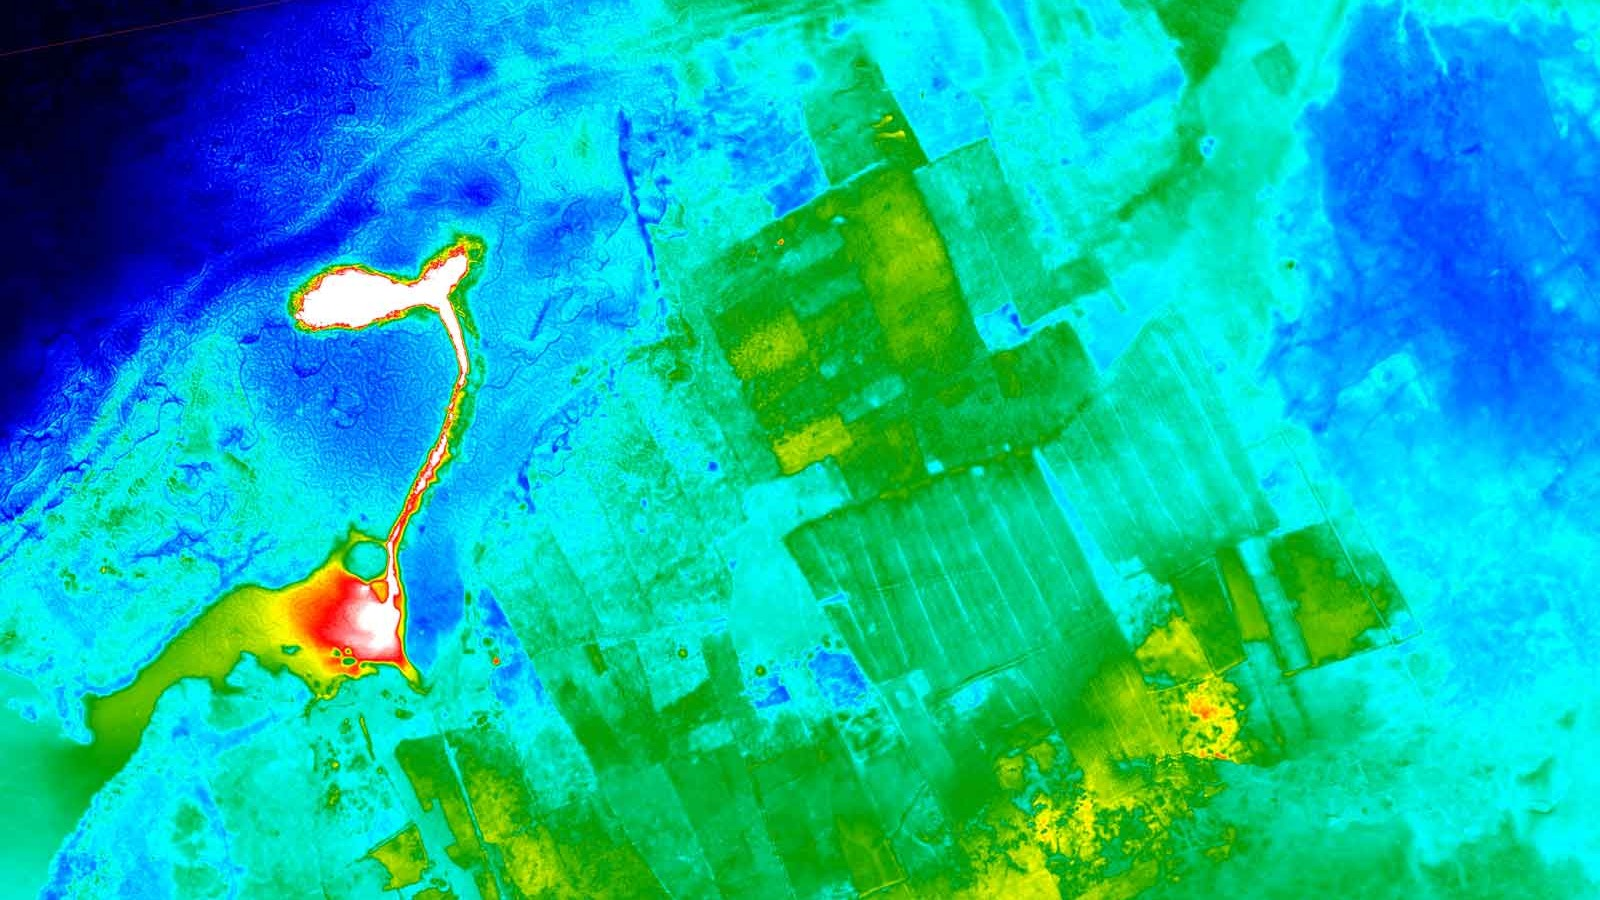 Thermal image of the geothermal power plant